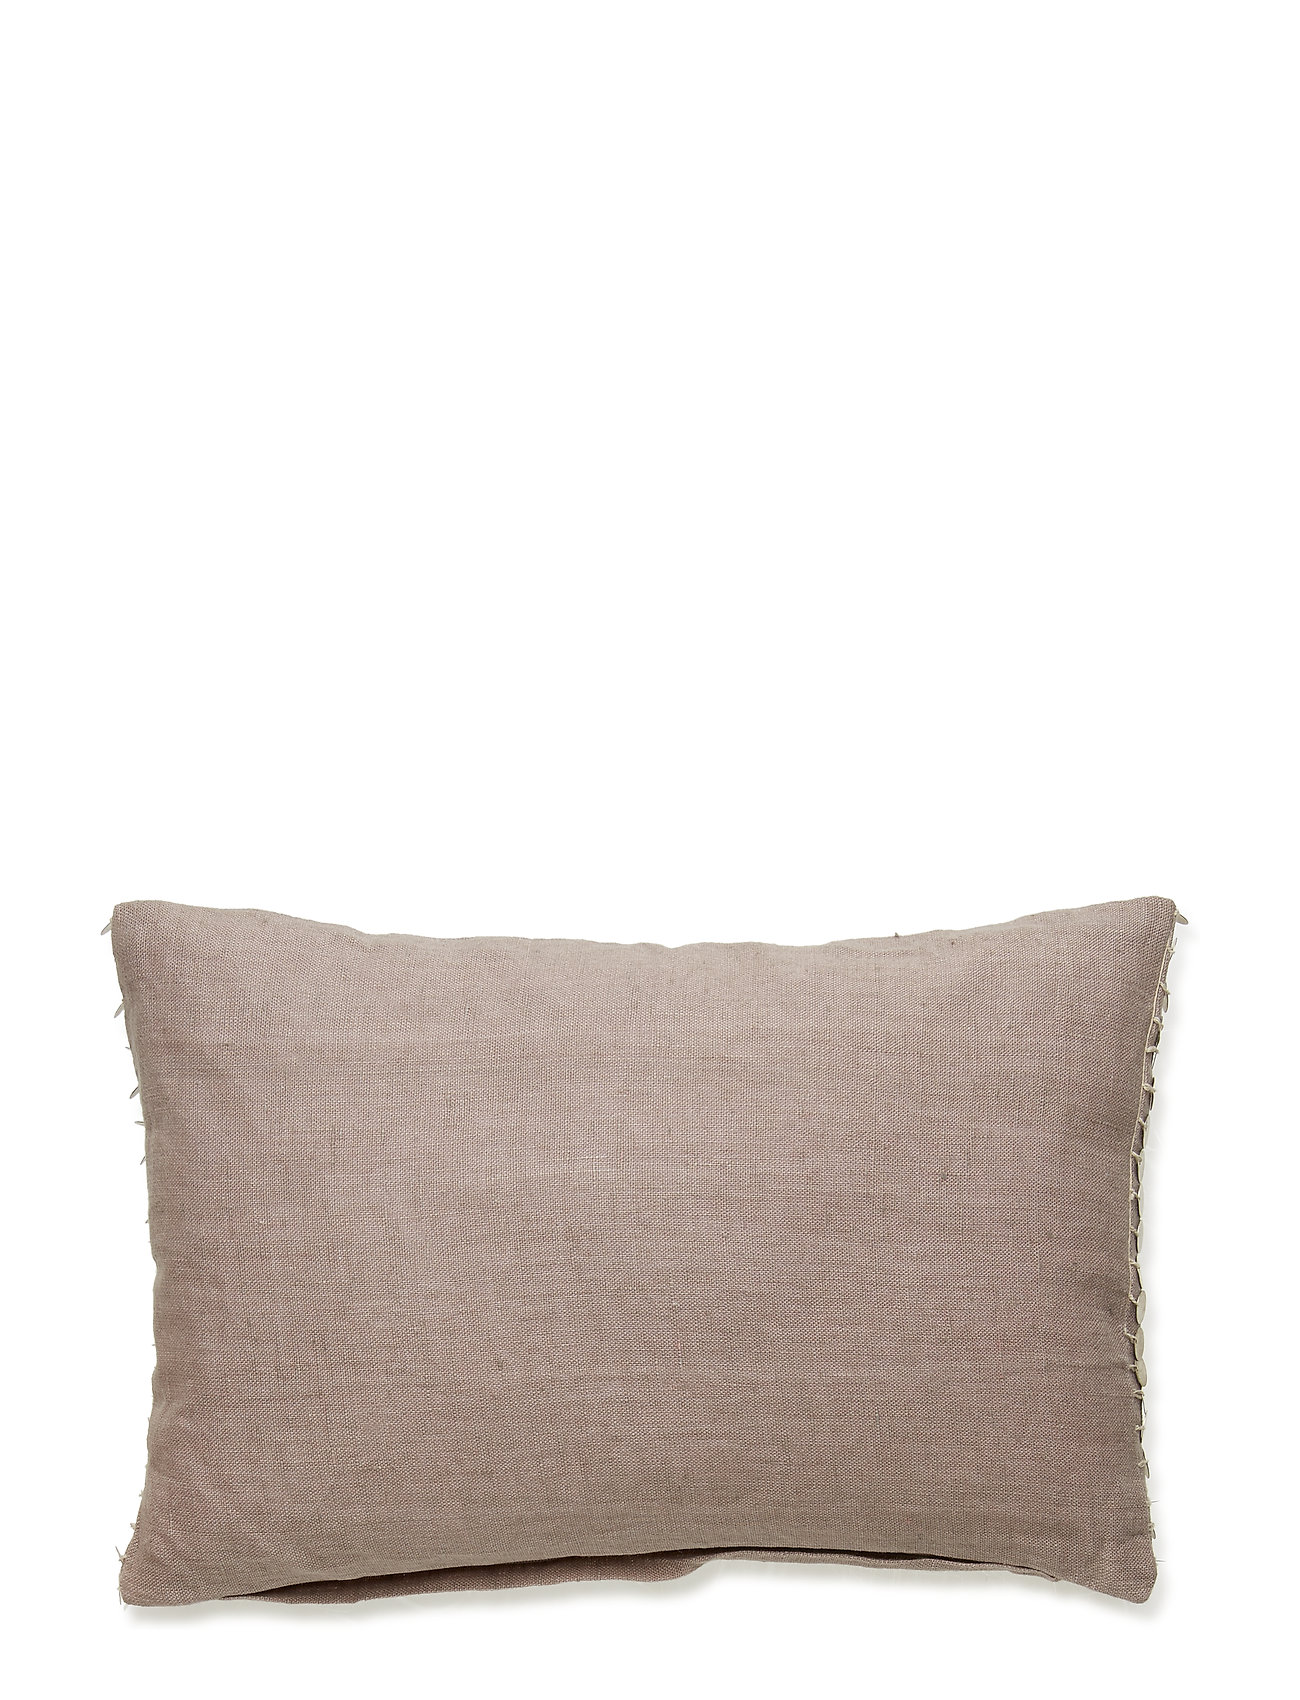 DAY Home Day Baby Maroc Cushion Cover - DUST